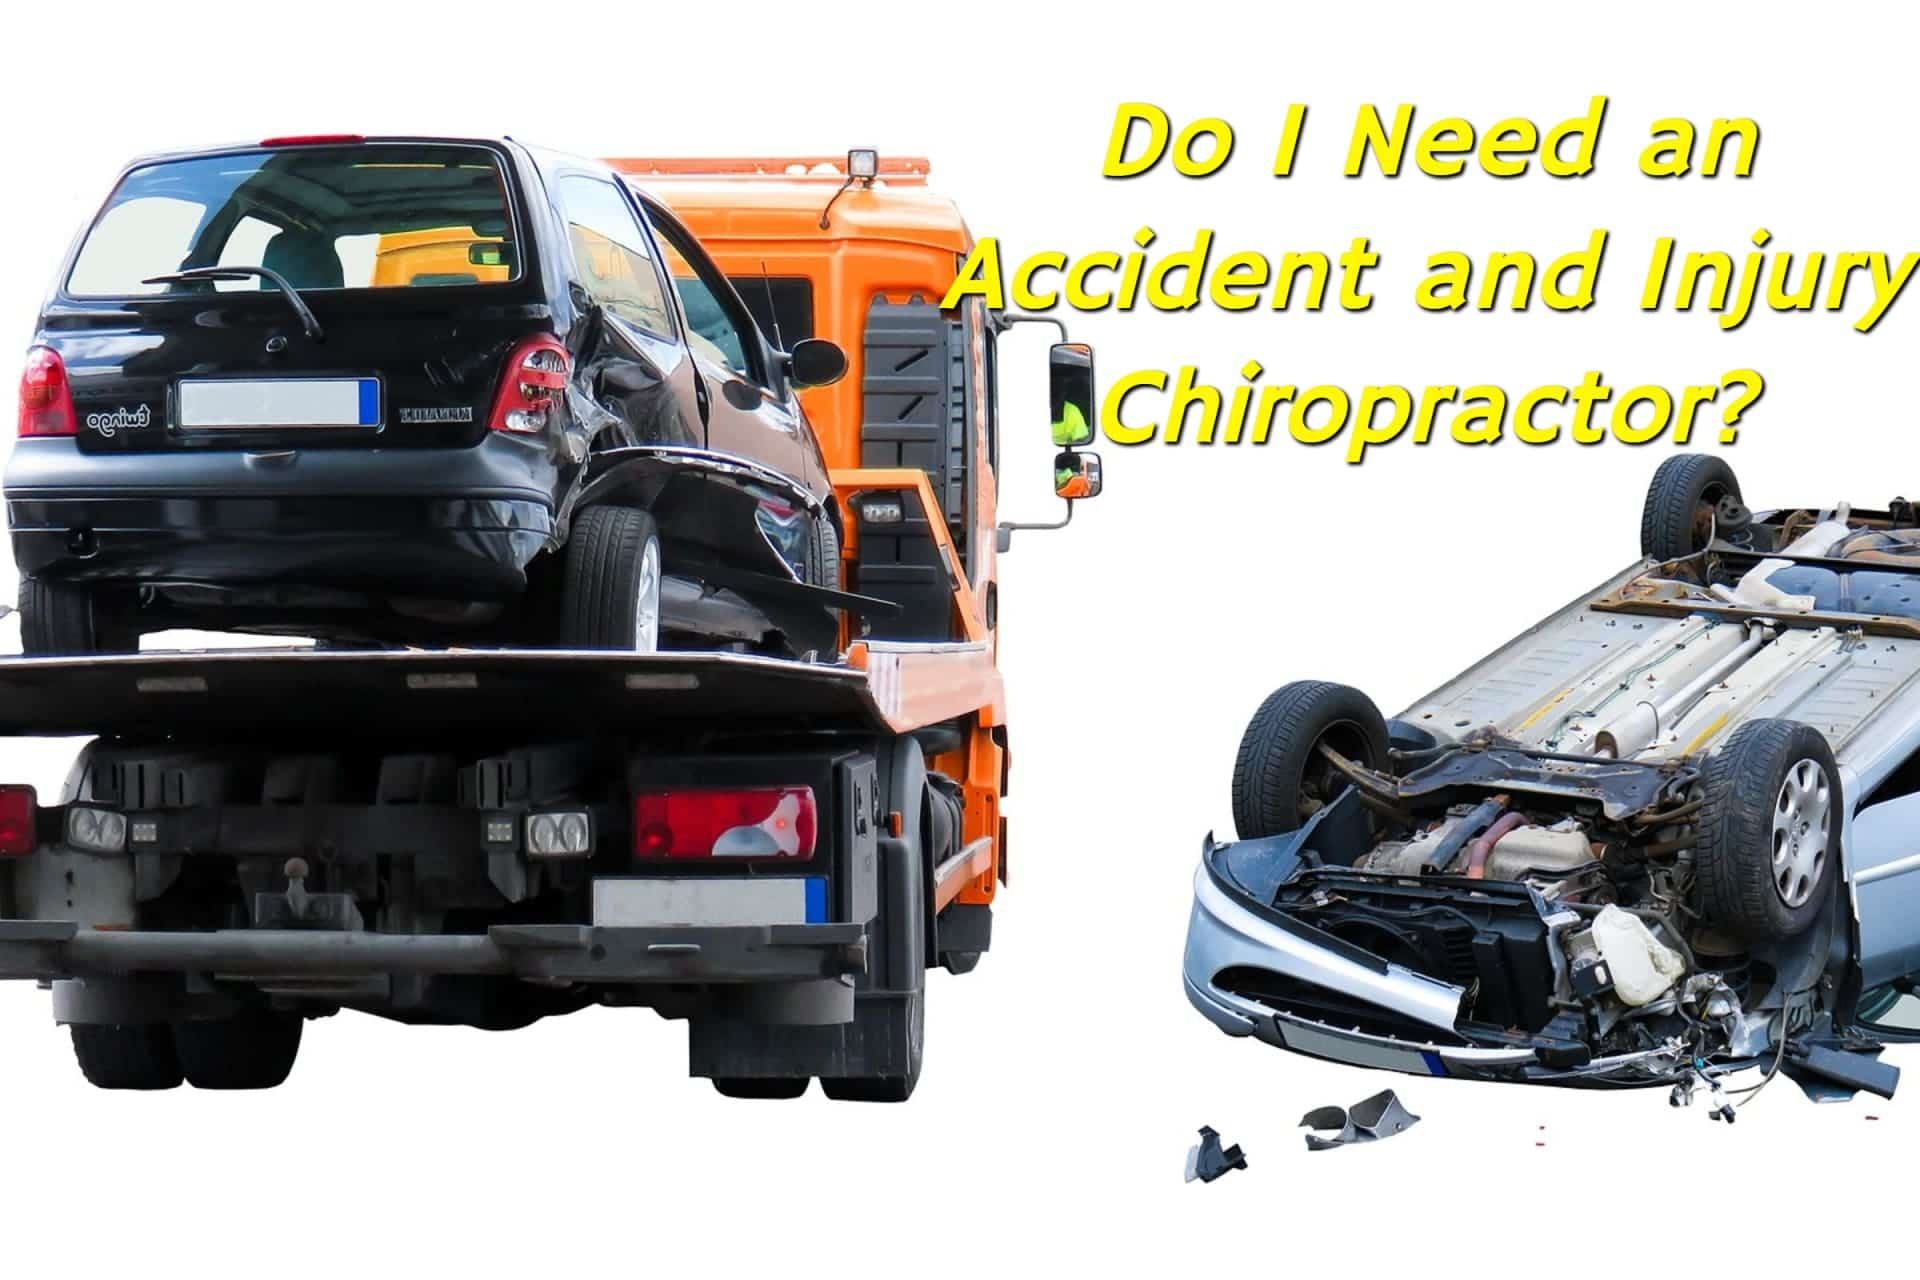 The aftermath of a car accident with one car on a tow truck and the other car upside down, the driver in need of an accident and injury chiropractor